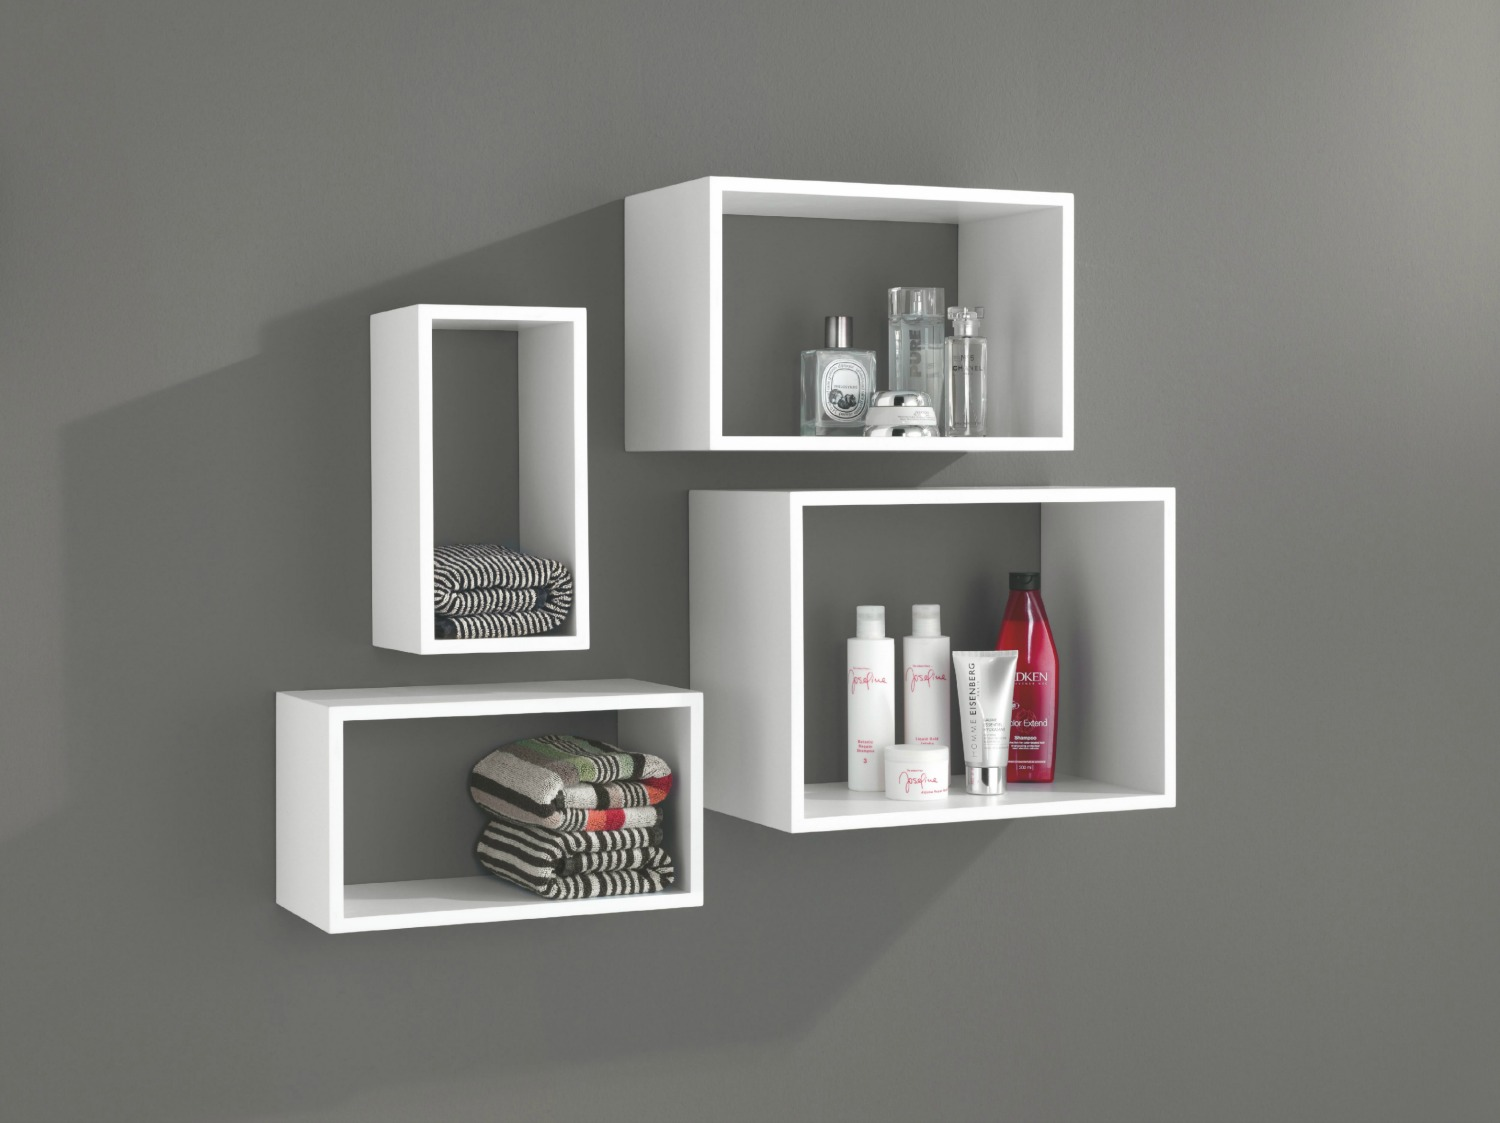 floating shelves wall great variety sizes windows standard shelf depth dolle piece cube set white bedroom furniture butcher block utility cart salvaged wood ture ledge dvd cable